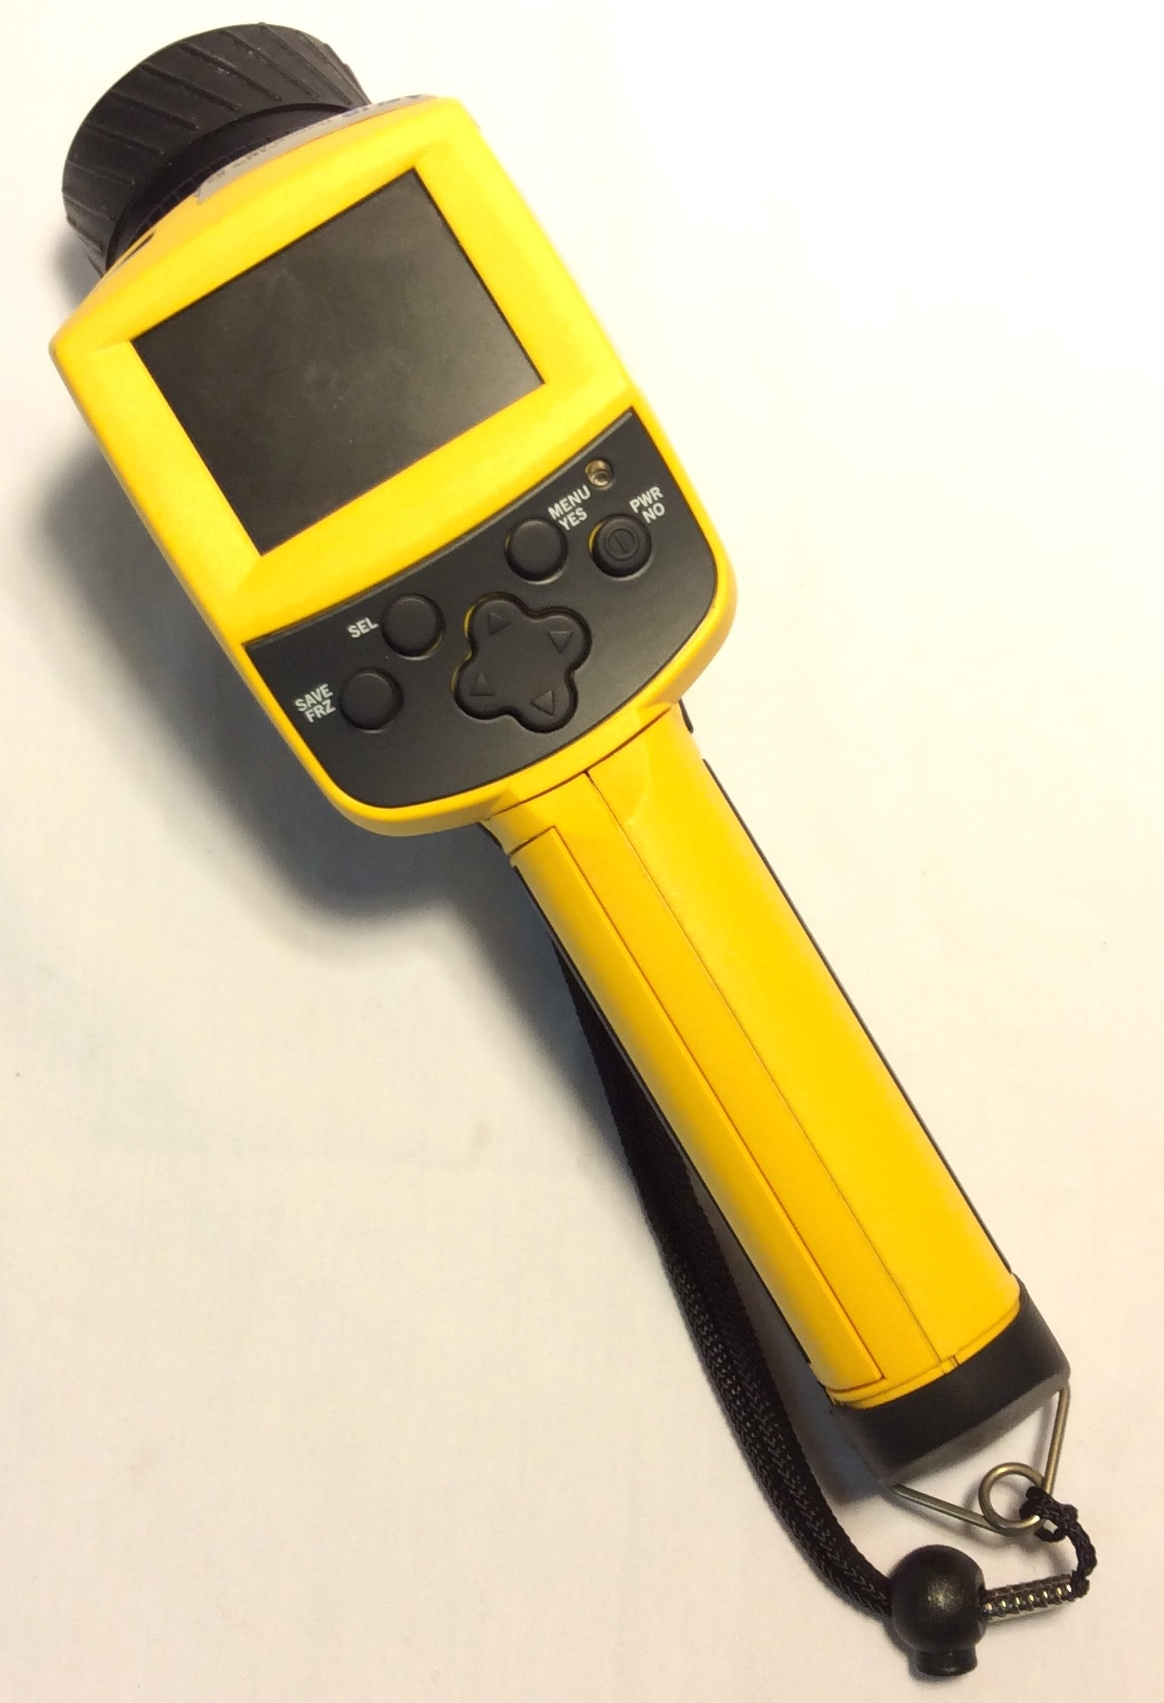 Flir Therma Cam B2; Yellow plastic